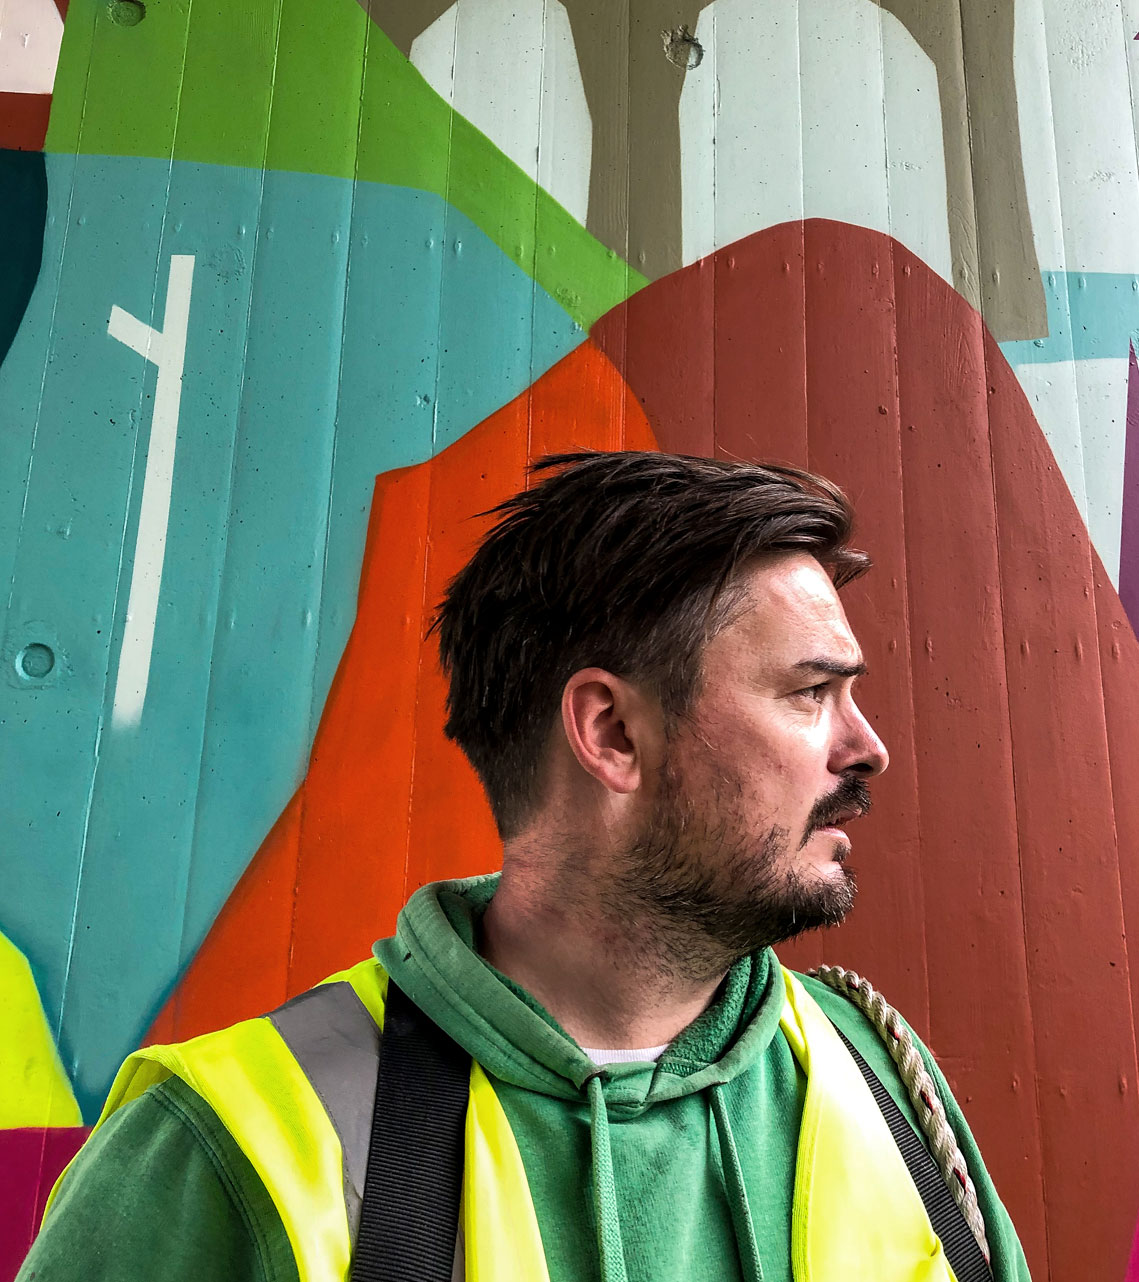 Graffiti artist Squirl in front of mural at Upside Gallery